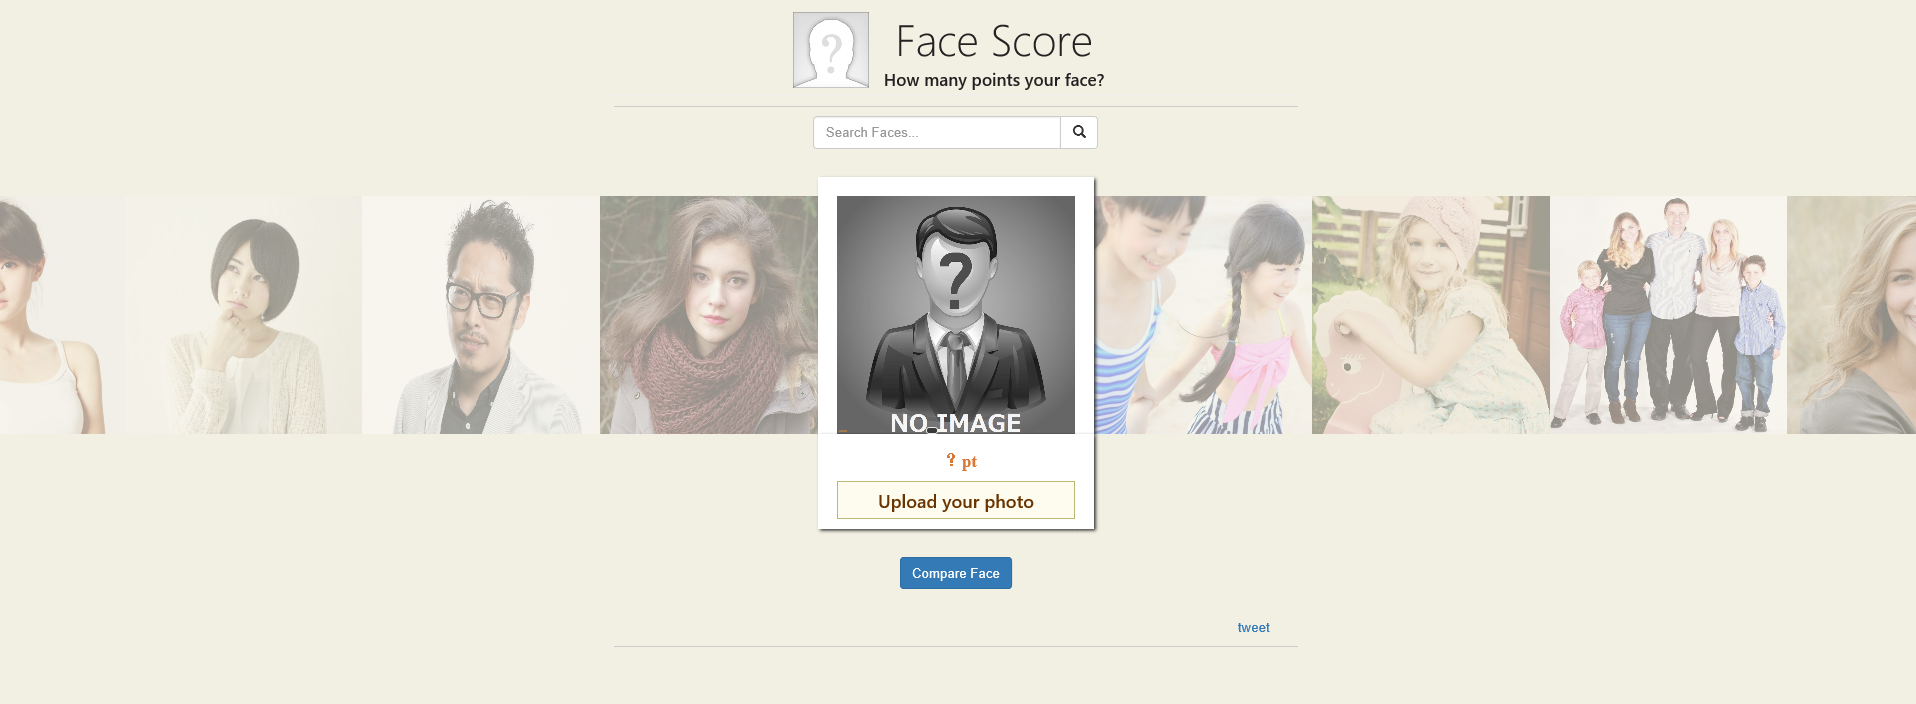 face score great website for entertainment skybiometry cloud